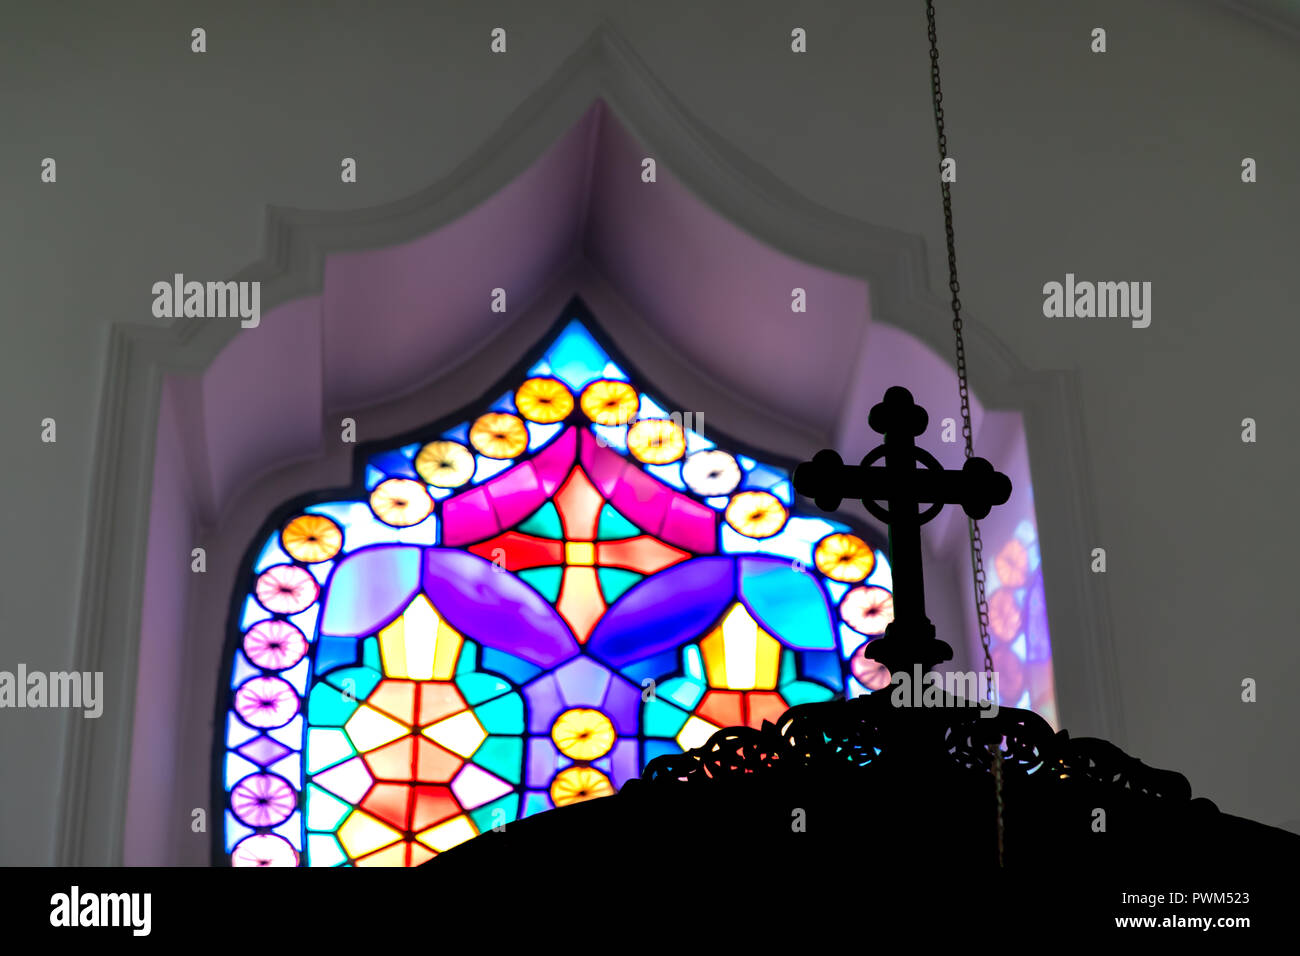 Stain Glass and Cross Silhouette. - Stock Image